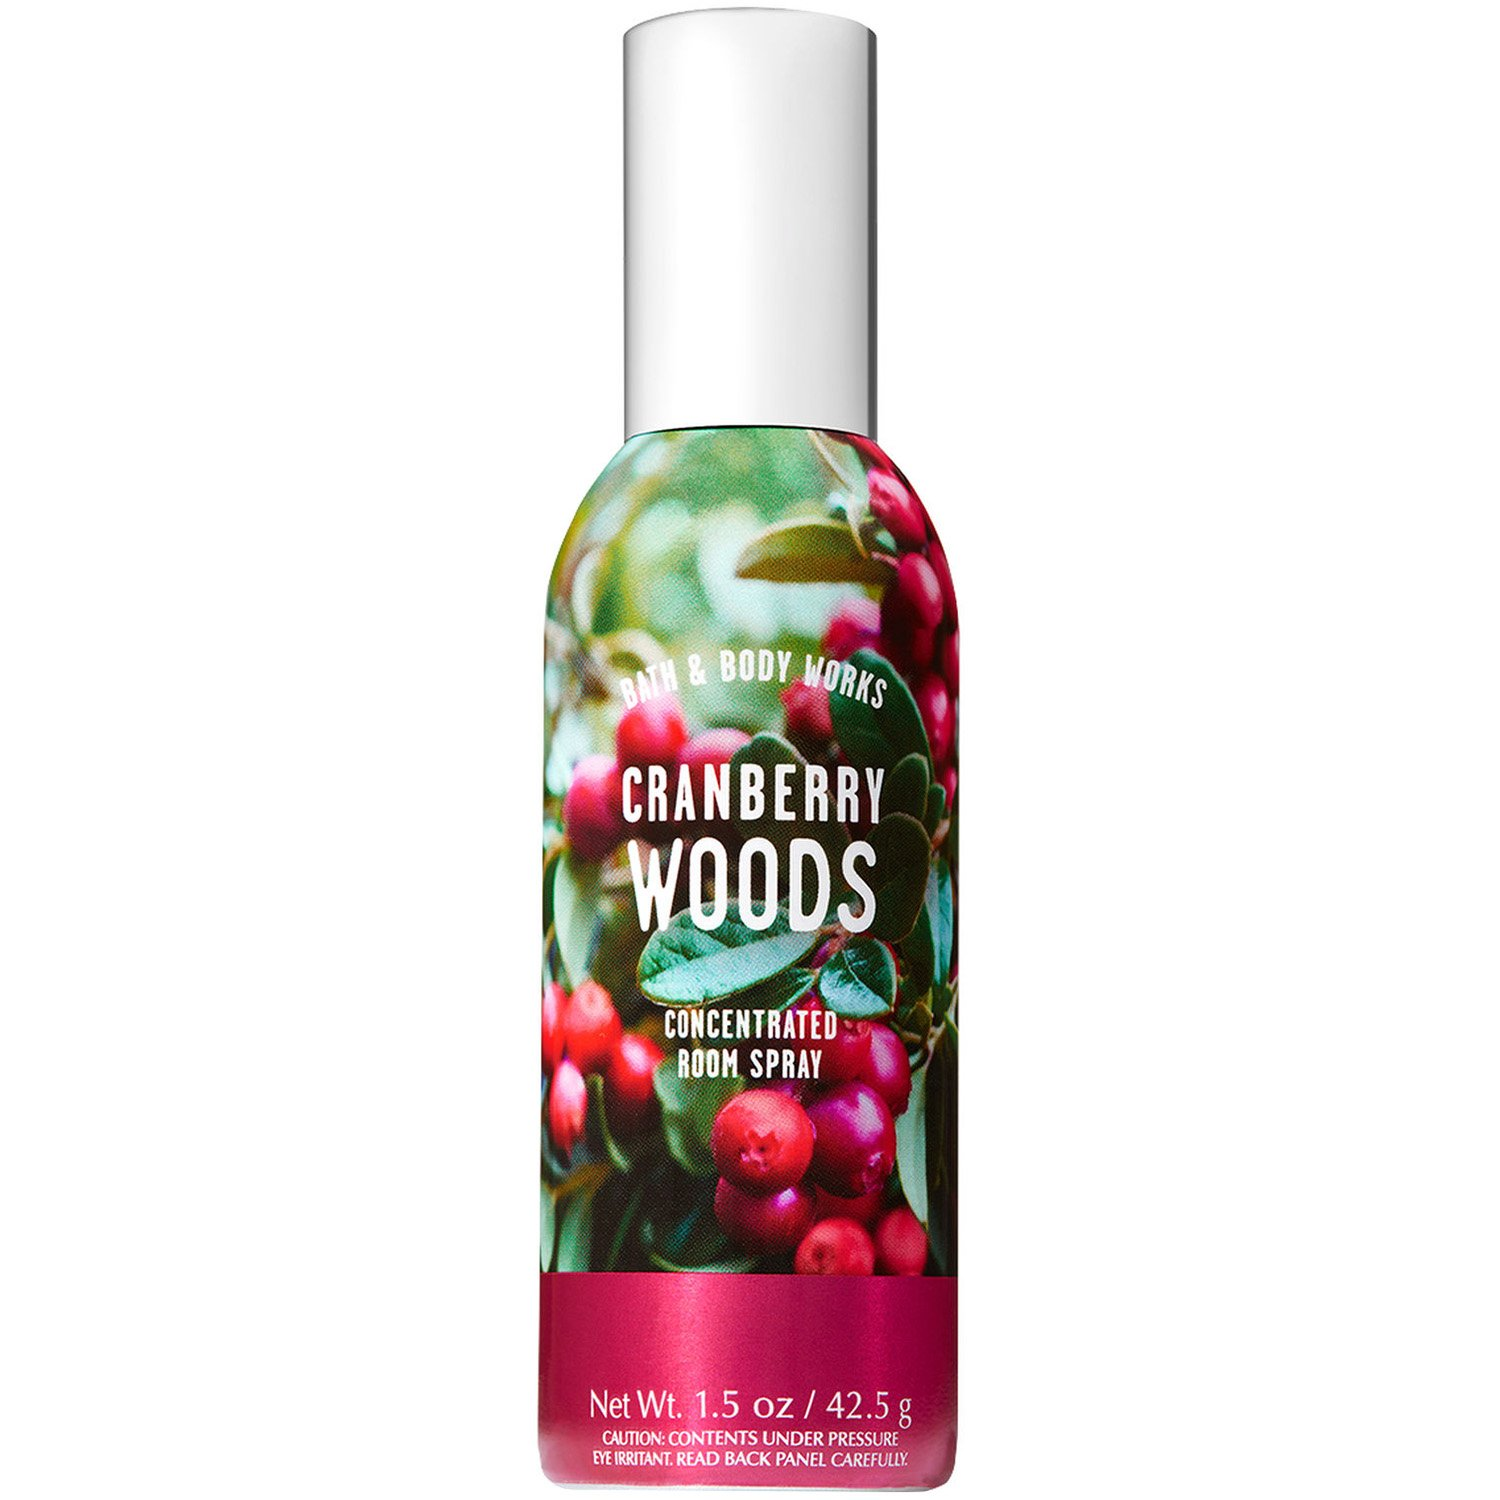 Bath and Body Works Cranberry Woods Concentrated Room Spray (2018 Edition) 1.5 Ounce